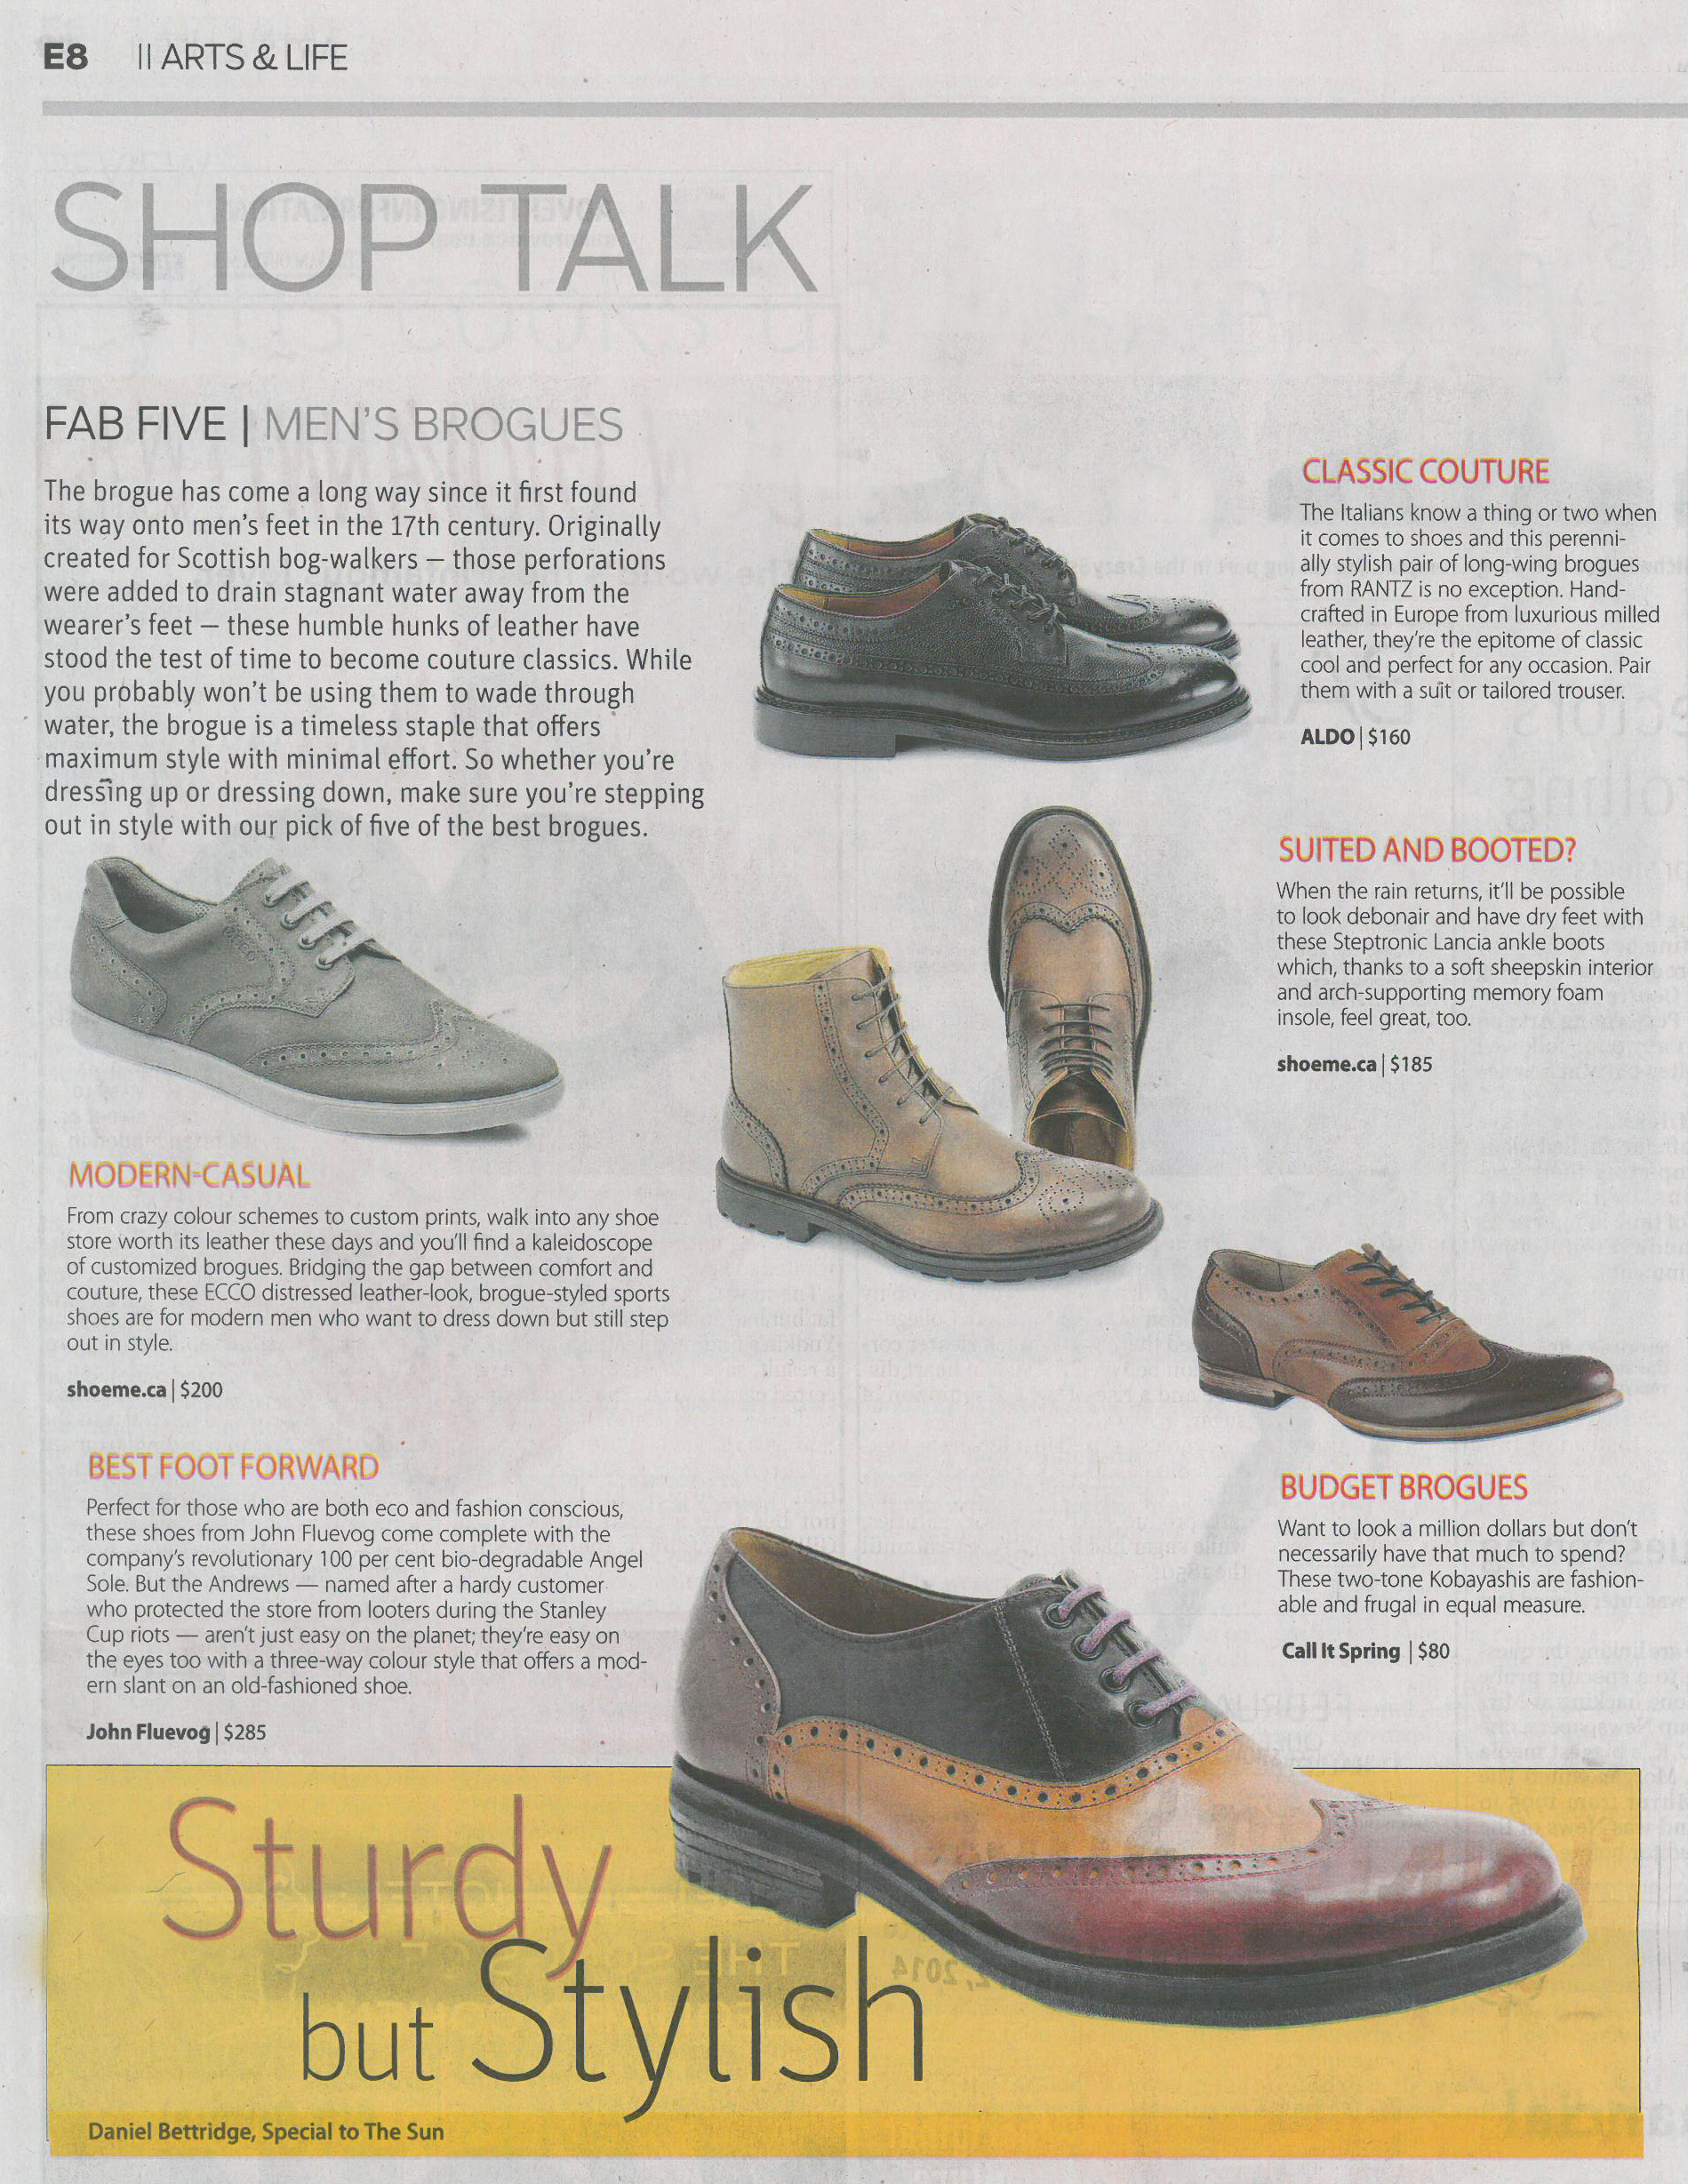 John Fluevog Shoes features in The Vancouver Sun